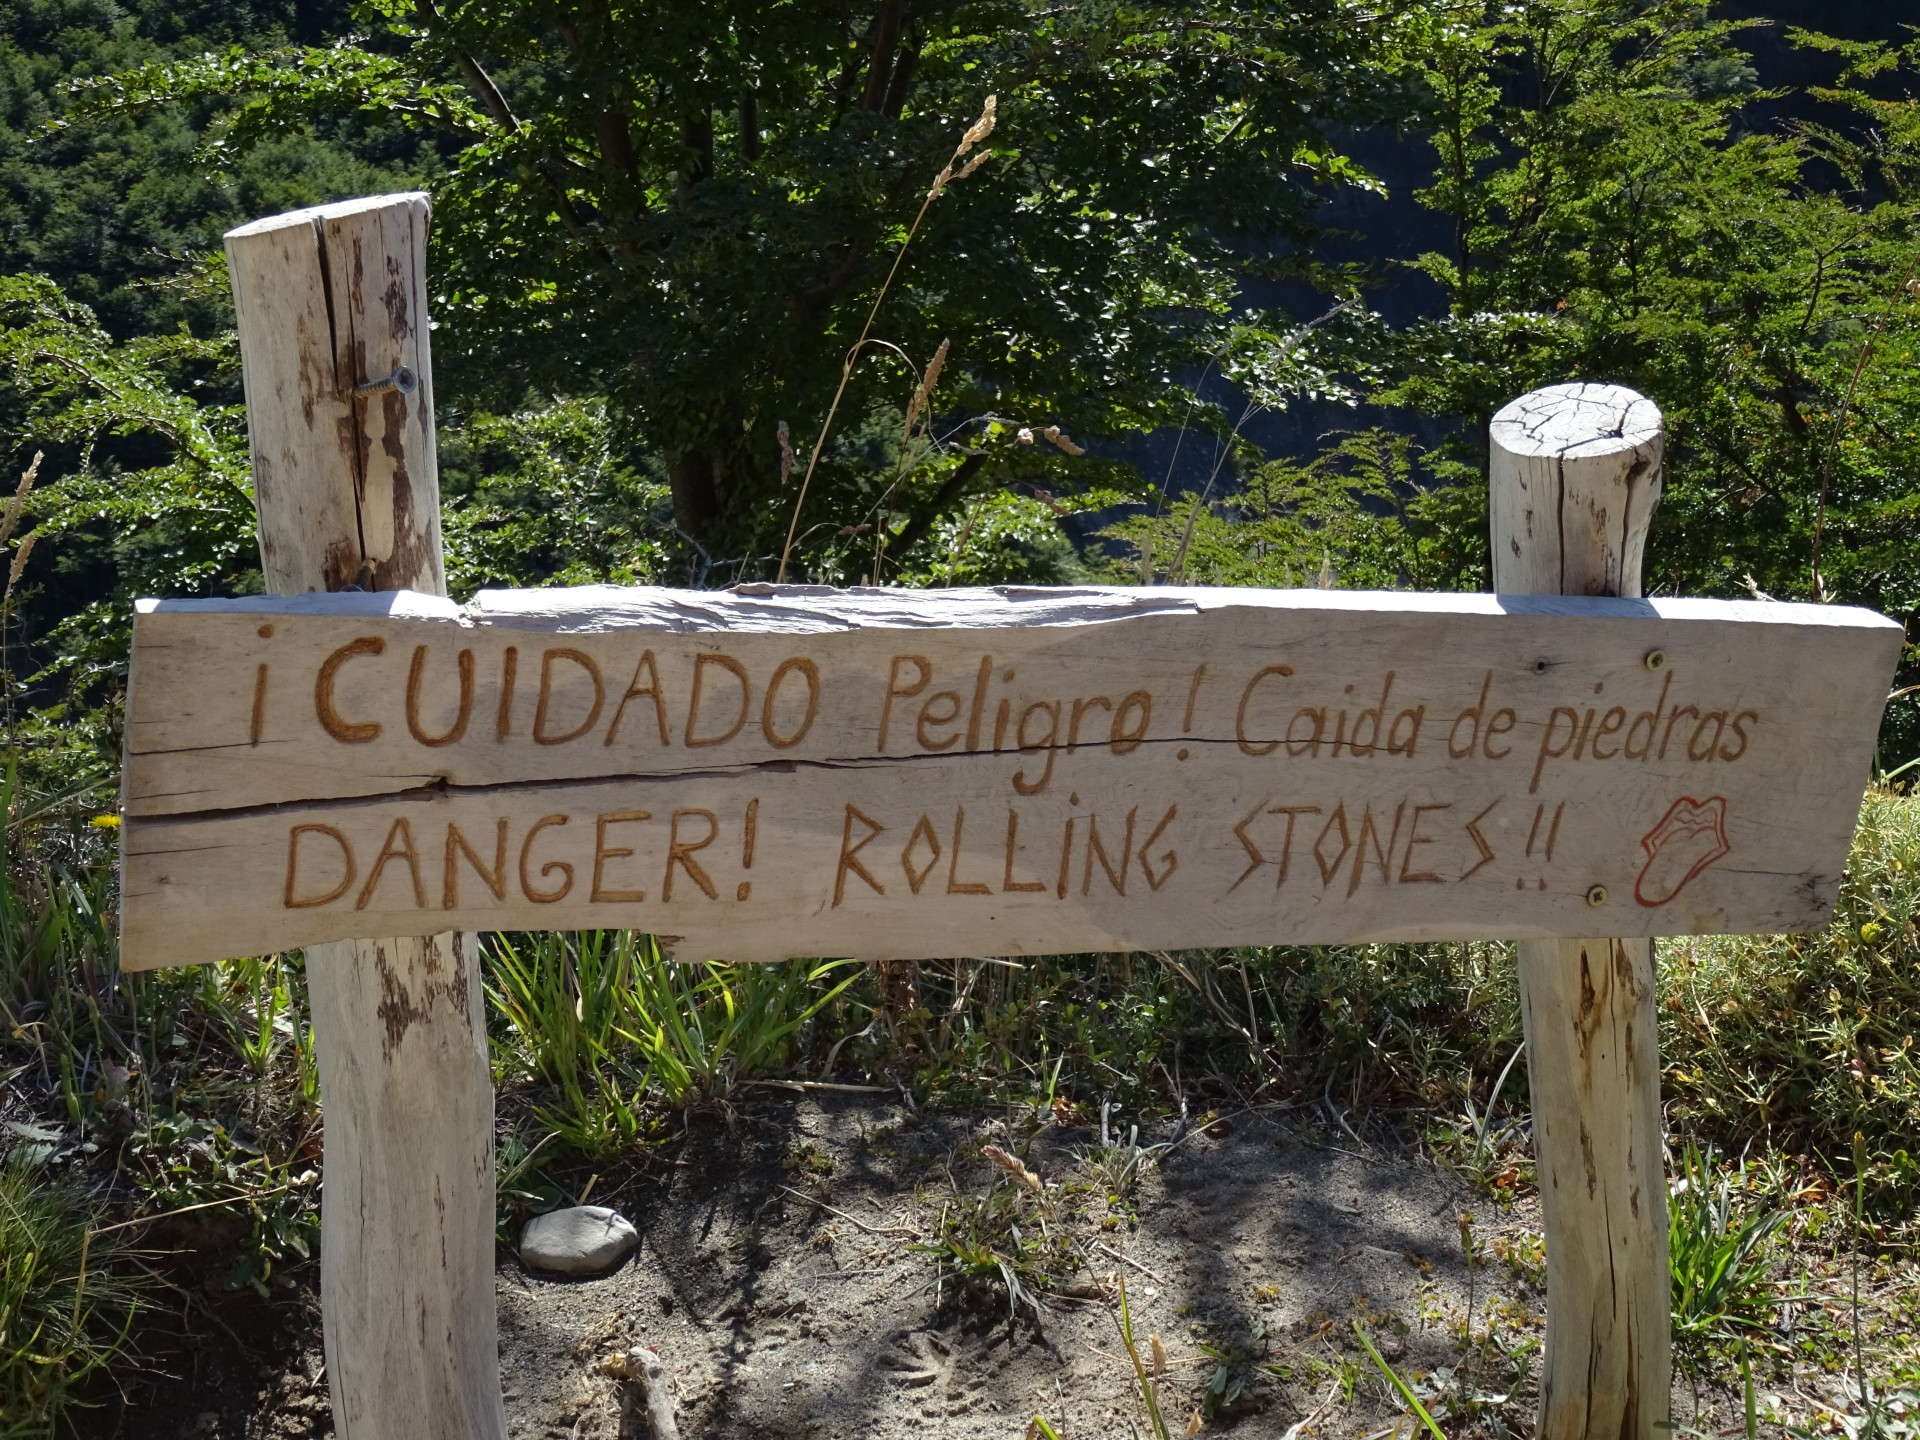 Not falling debris, or rock slides. No. Rolling Stones.